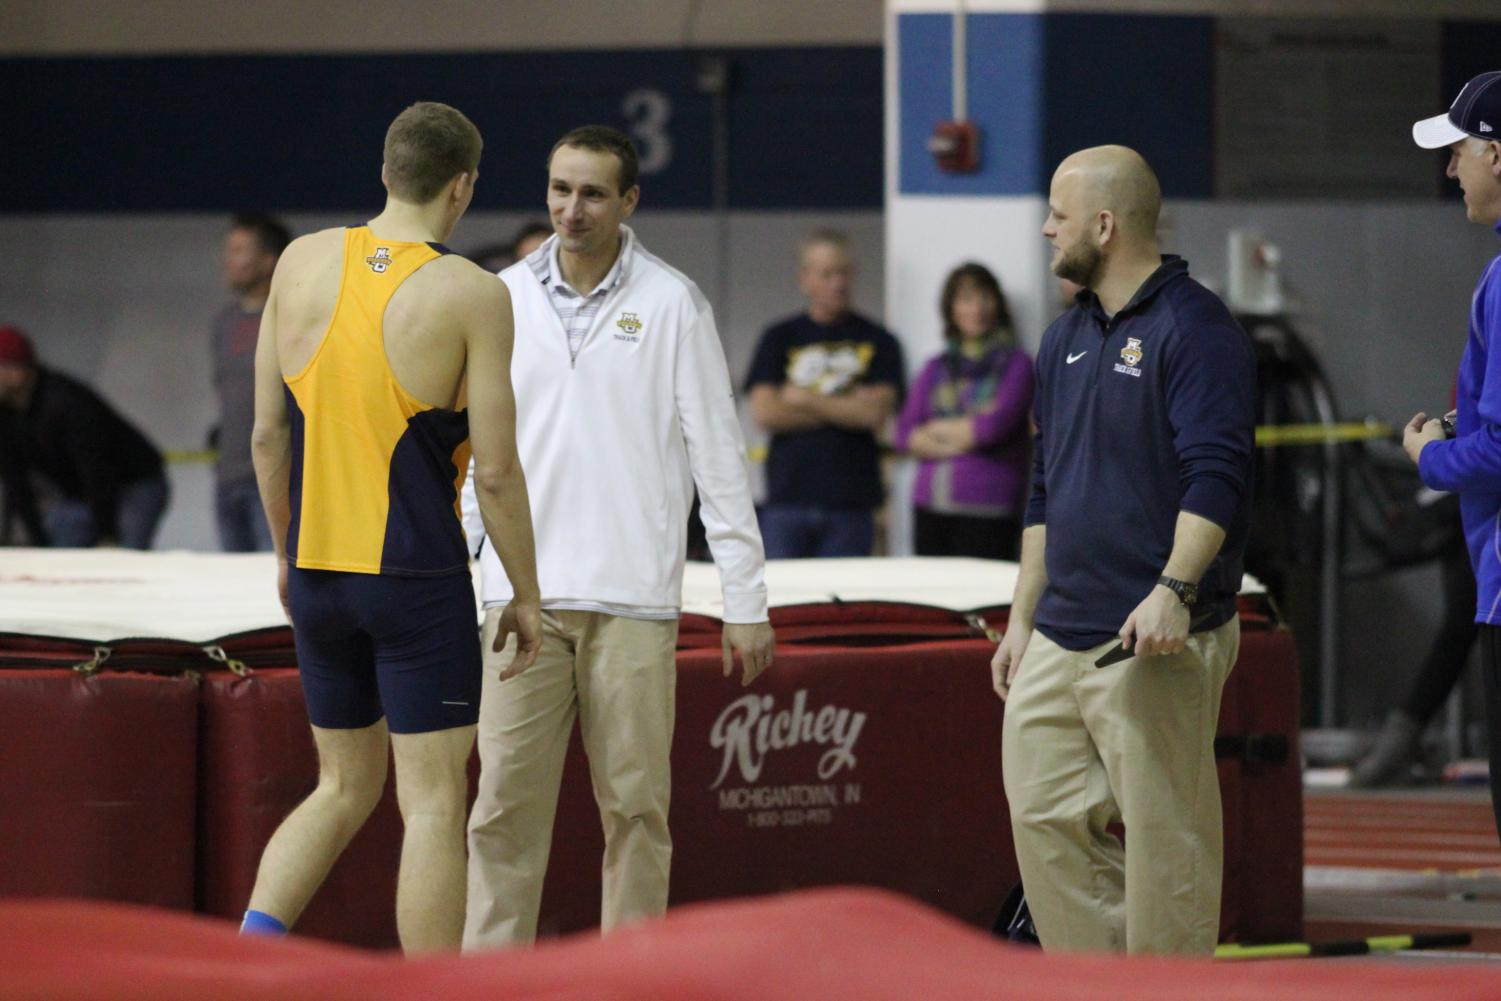 Track and field assistant coach Rick Bellford (center) works with former All-American high jumper Wally Ellenson. (Photo by Maggie Bean, courtesy of Marquette Athletics.)